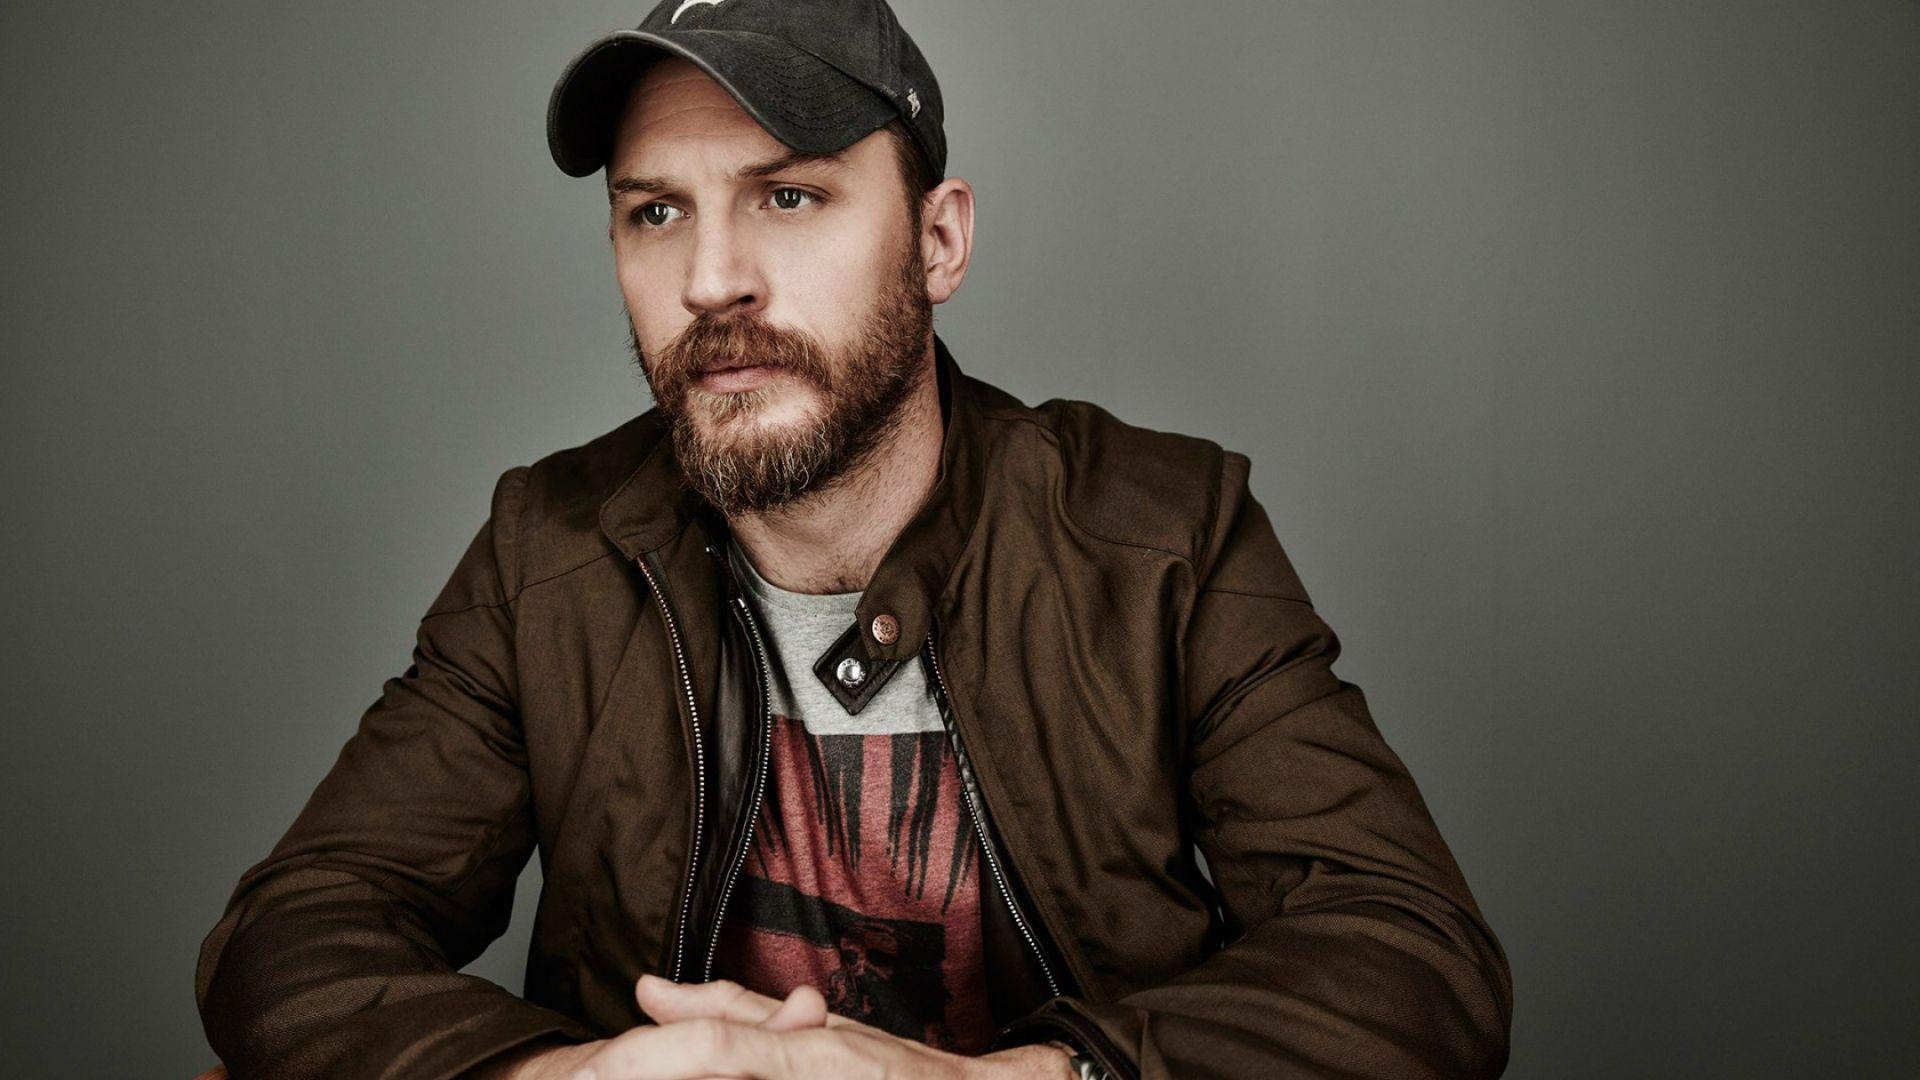 Full HD 1080p Tom hardy Wallpapers HD, Desktop Backgrounds